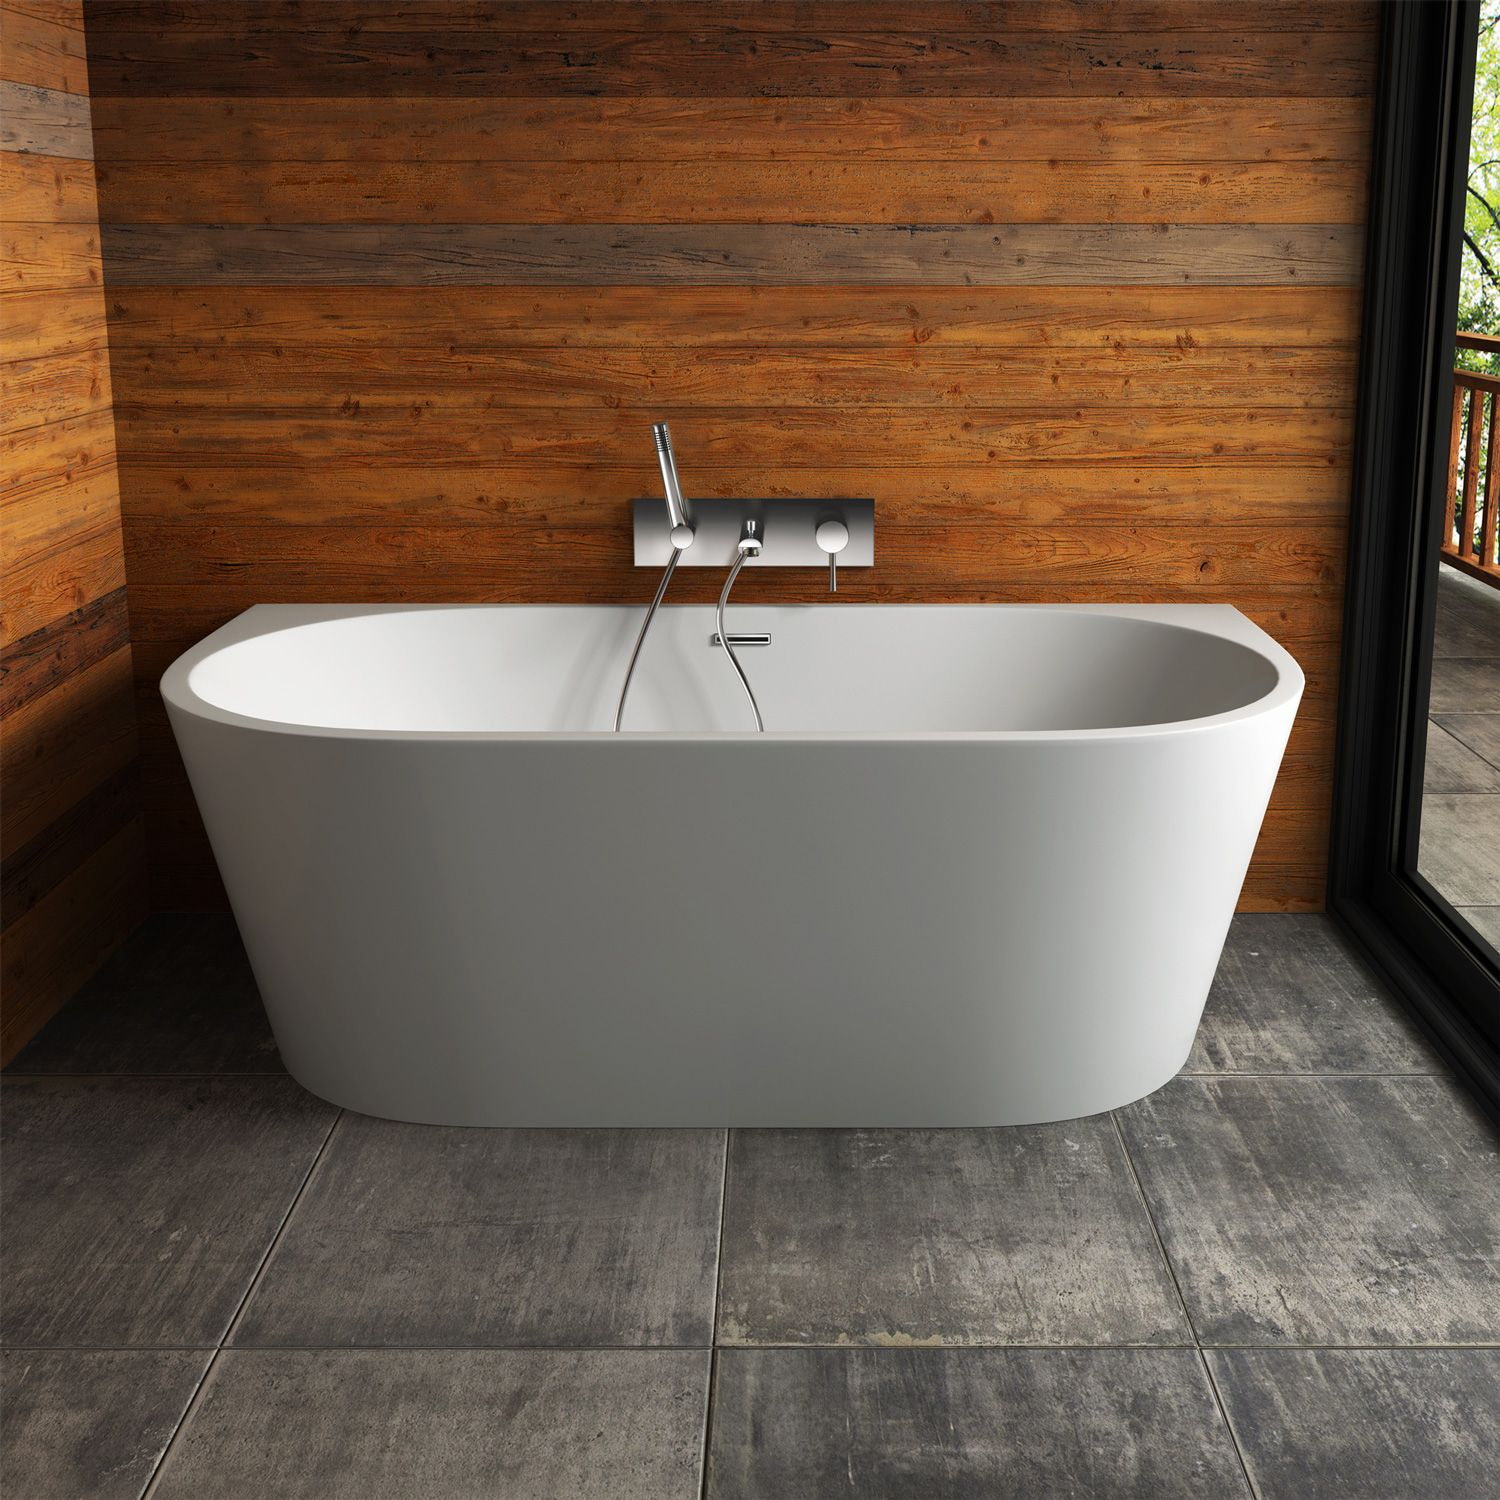 semifree standing bathtub mounts flush to the wall for